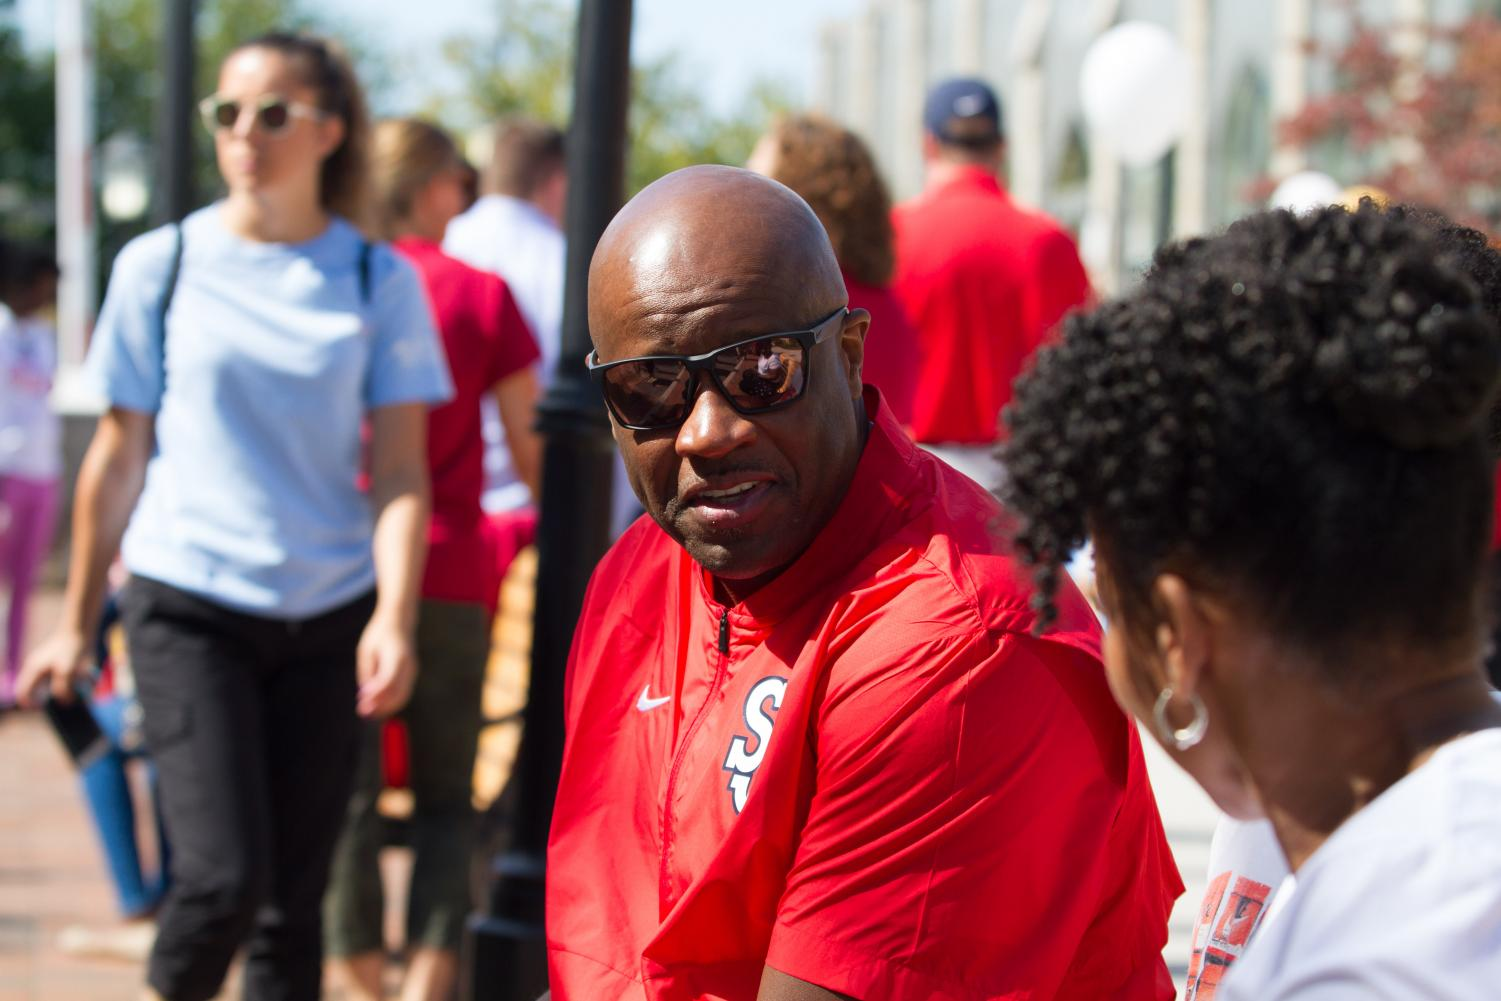 Mike Anderson interacting with fans at the ninth annual Dribble for the Cure event.